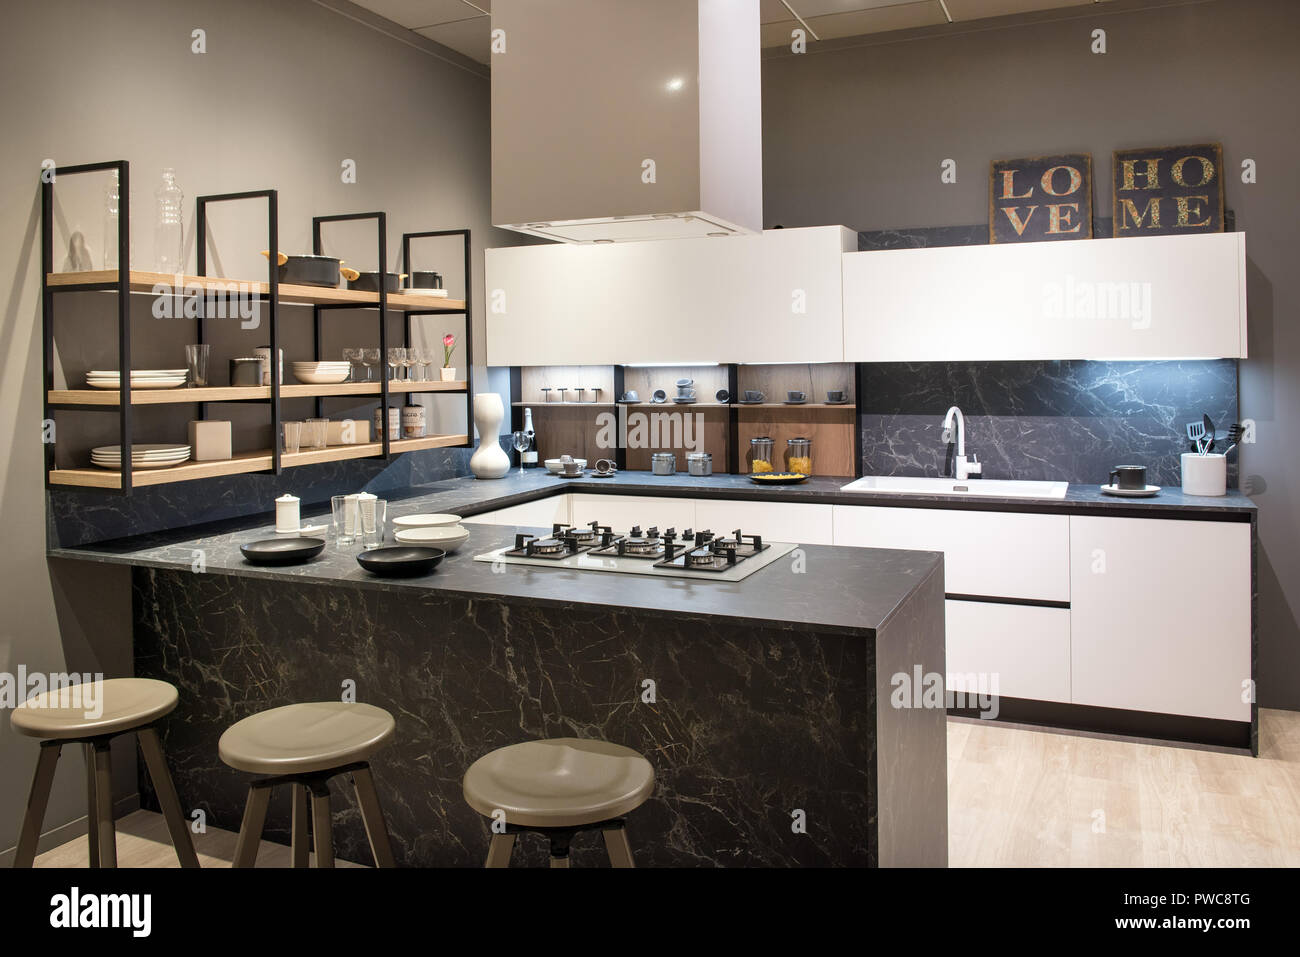 Modern kitchen interior with centre island with bar stools and hob, white cabinets and open shelving - Stock Image